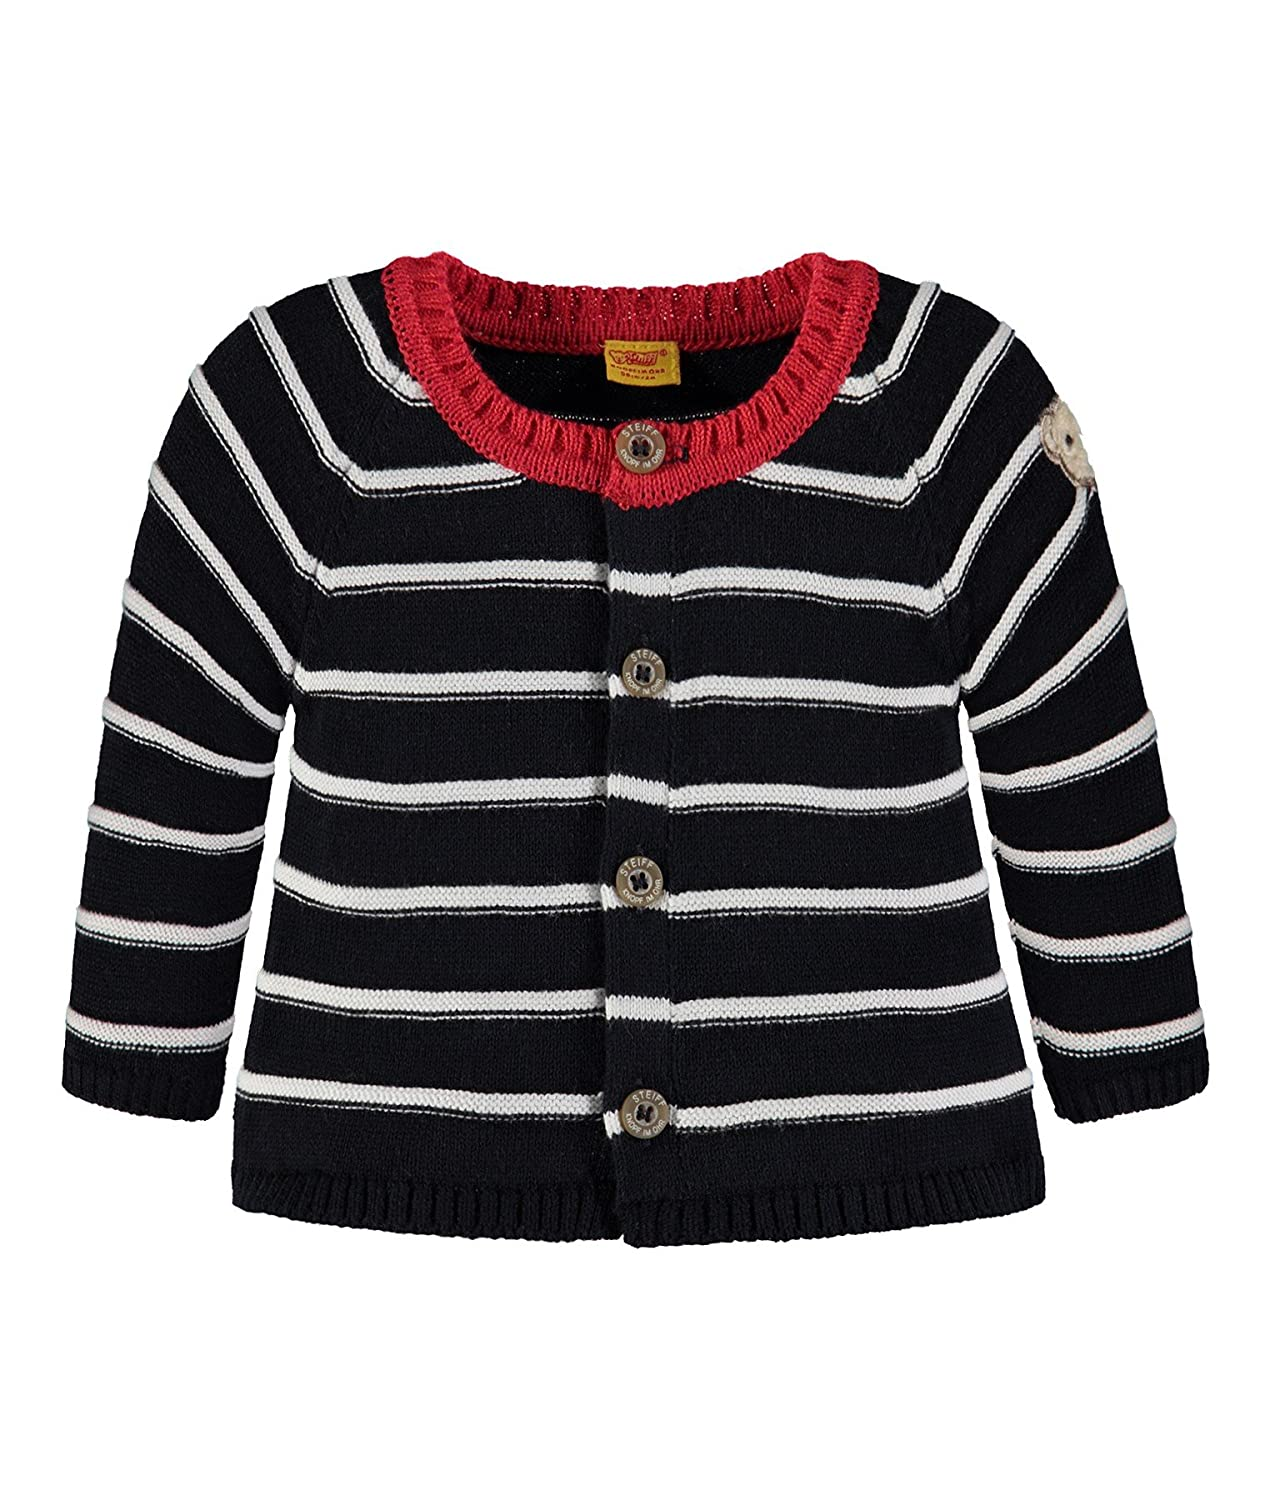 Steiff Collection Jungen Strickjacke 1/1 Arm 6832507, Mehrfarbig (y/d Stripe 0001), 86